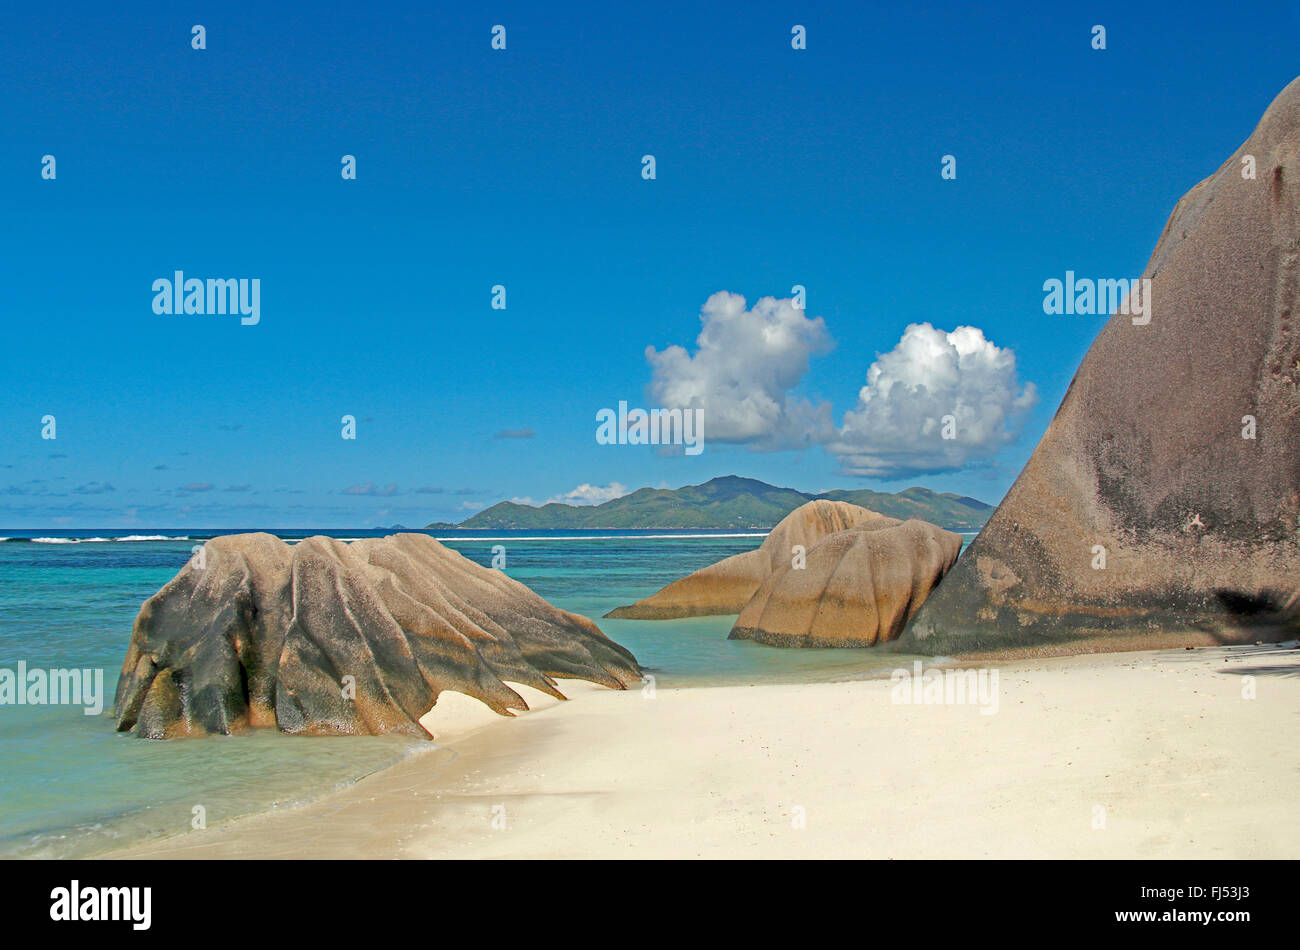 beach with granite rocks and view onto the island Praslin in the background, Seychelles, La Digue, Anse Source d - Stock Image